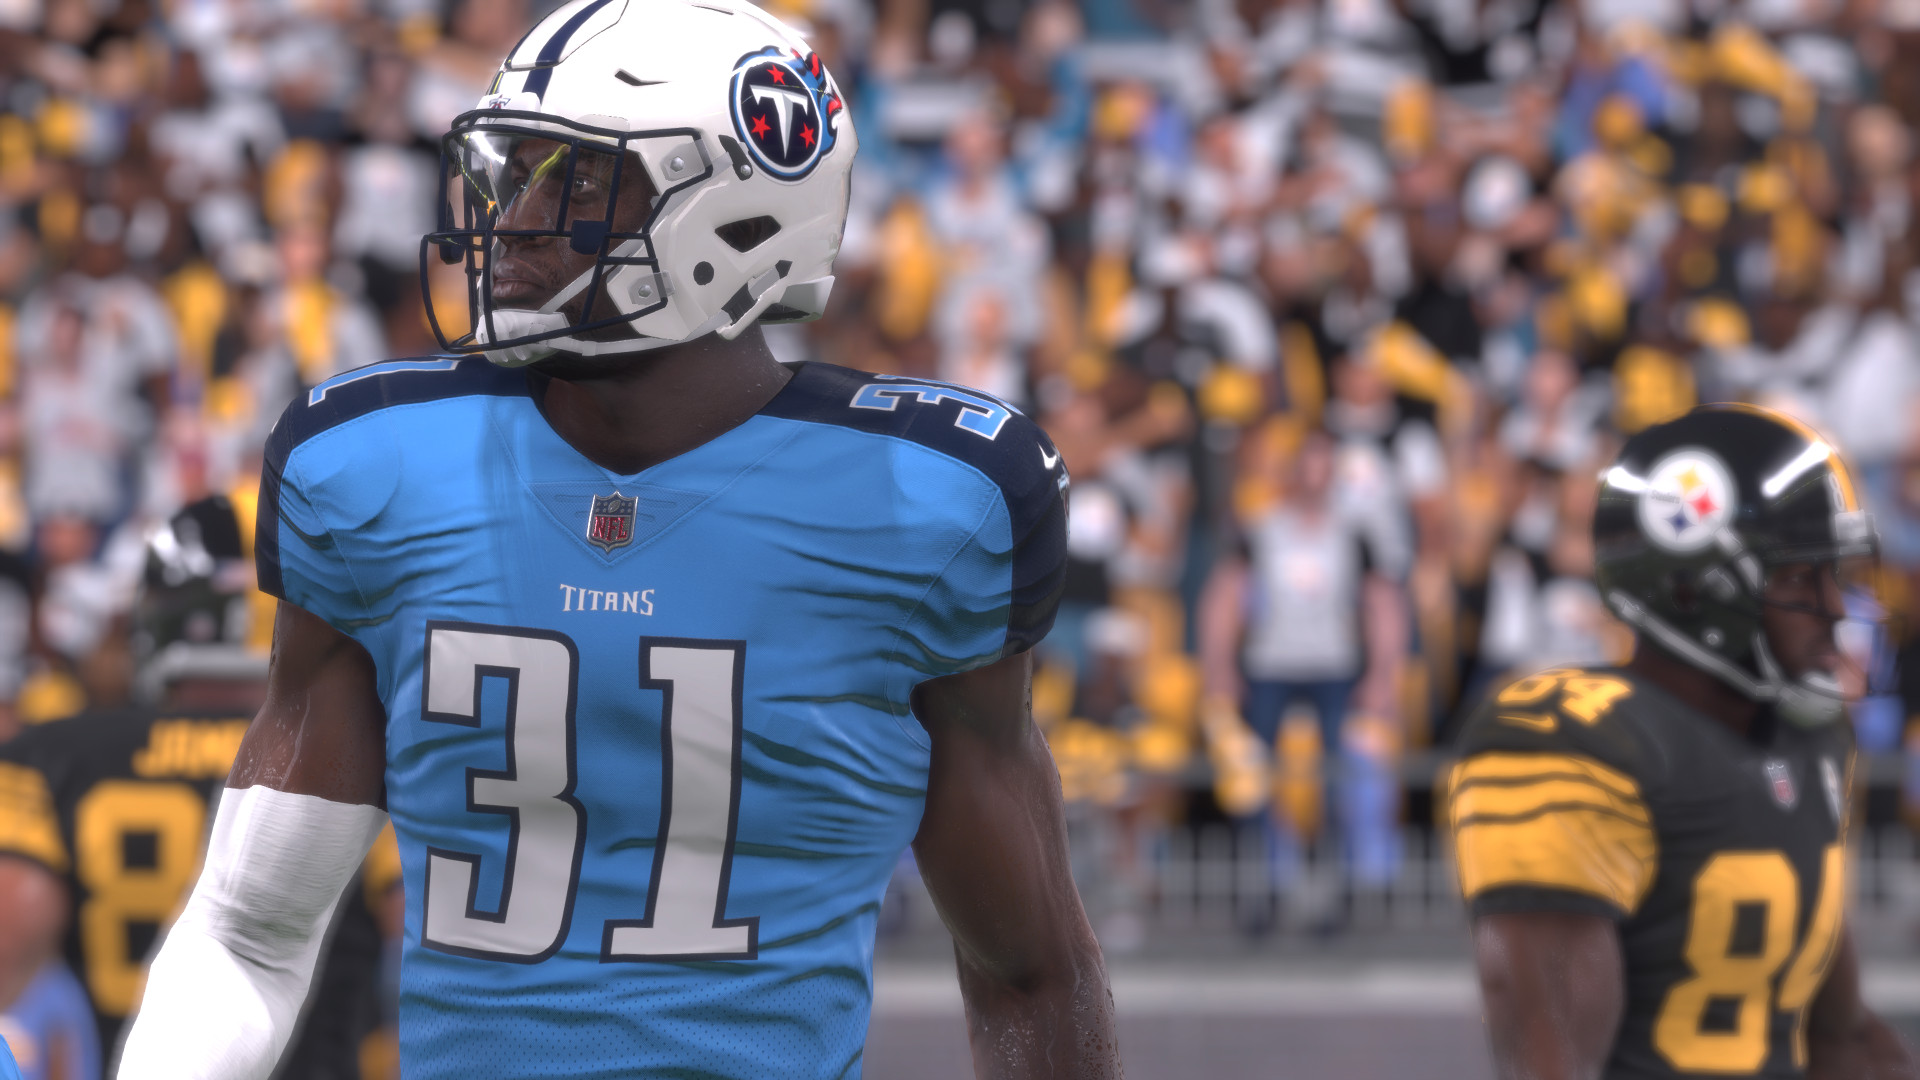 Madden NFL 18 roster update details following week 10 of the season